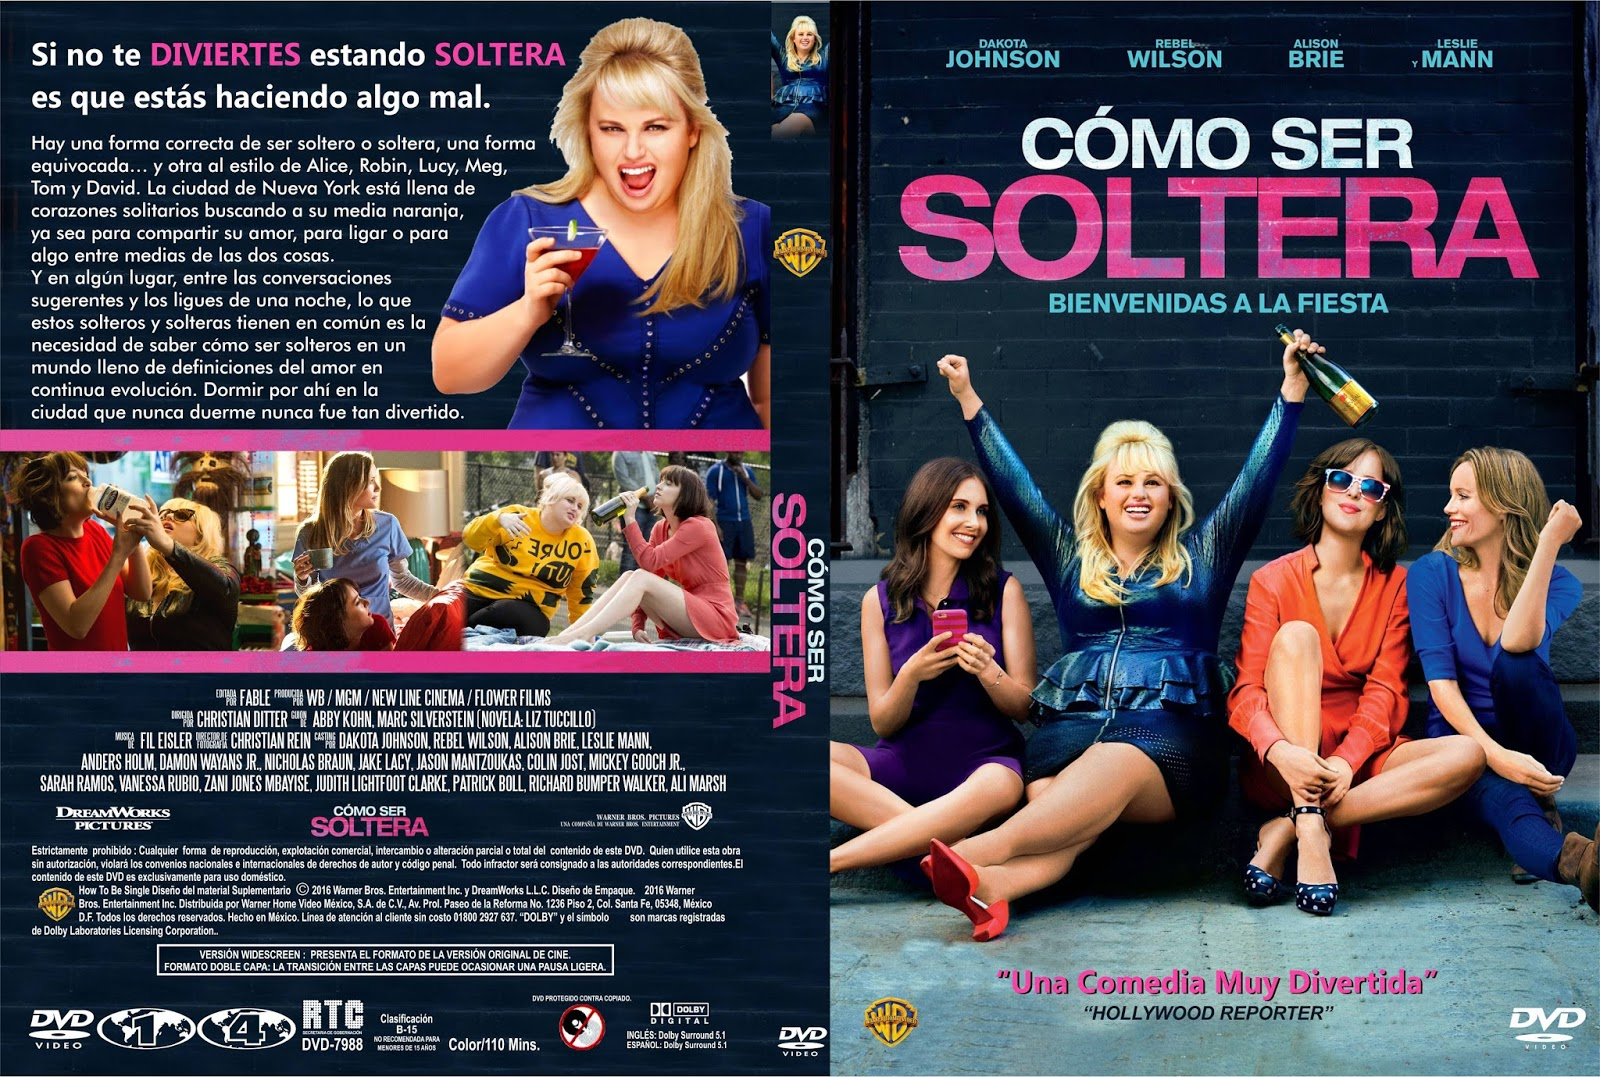 Download Dvd Covers How To Be Single Background 2 C�mo Ser Soltera